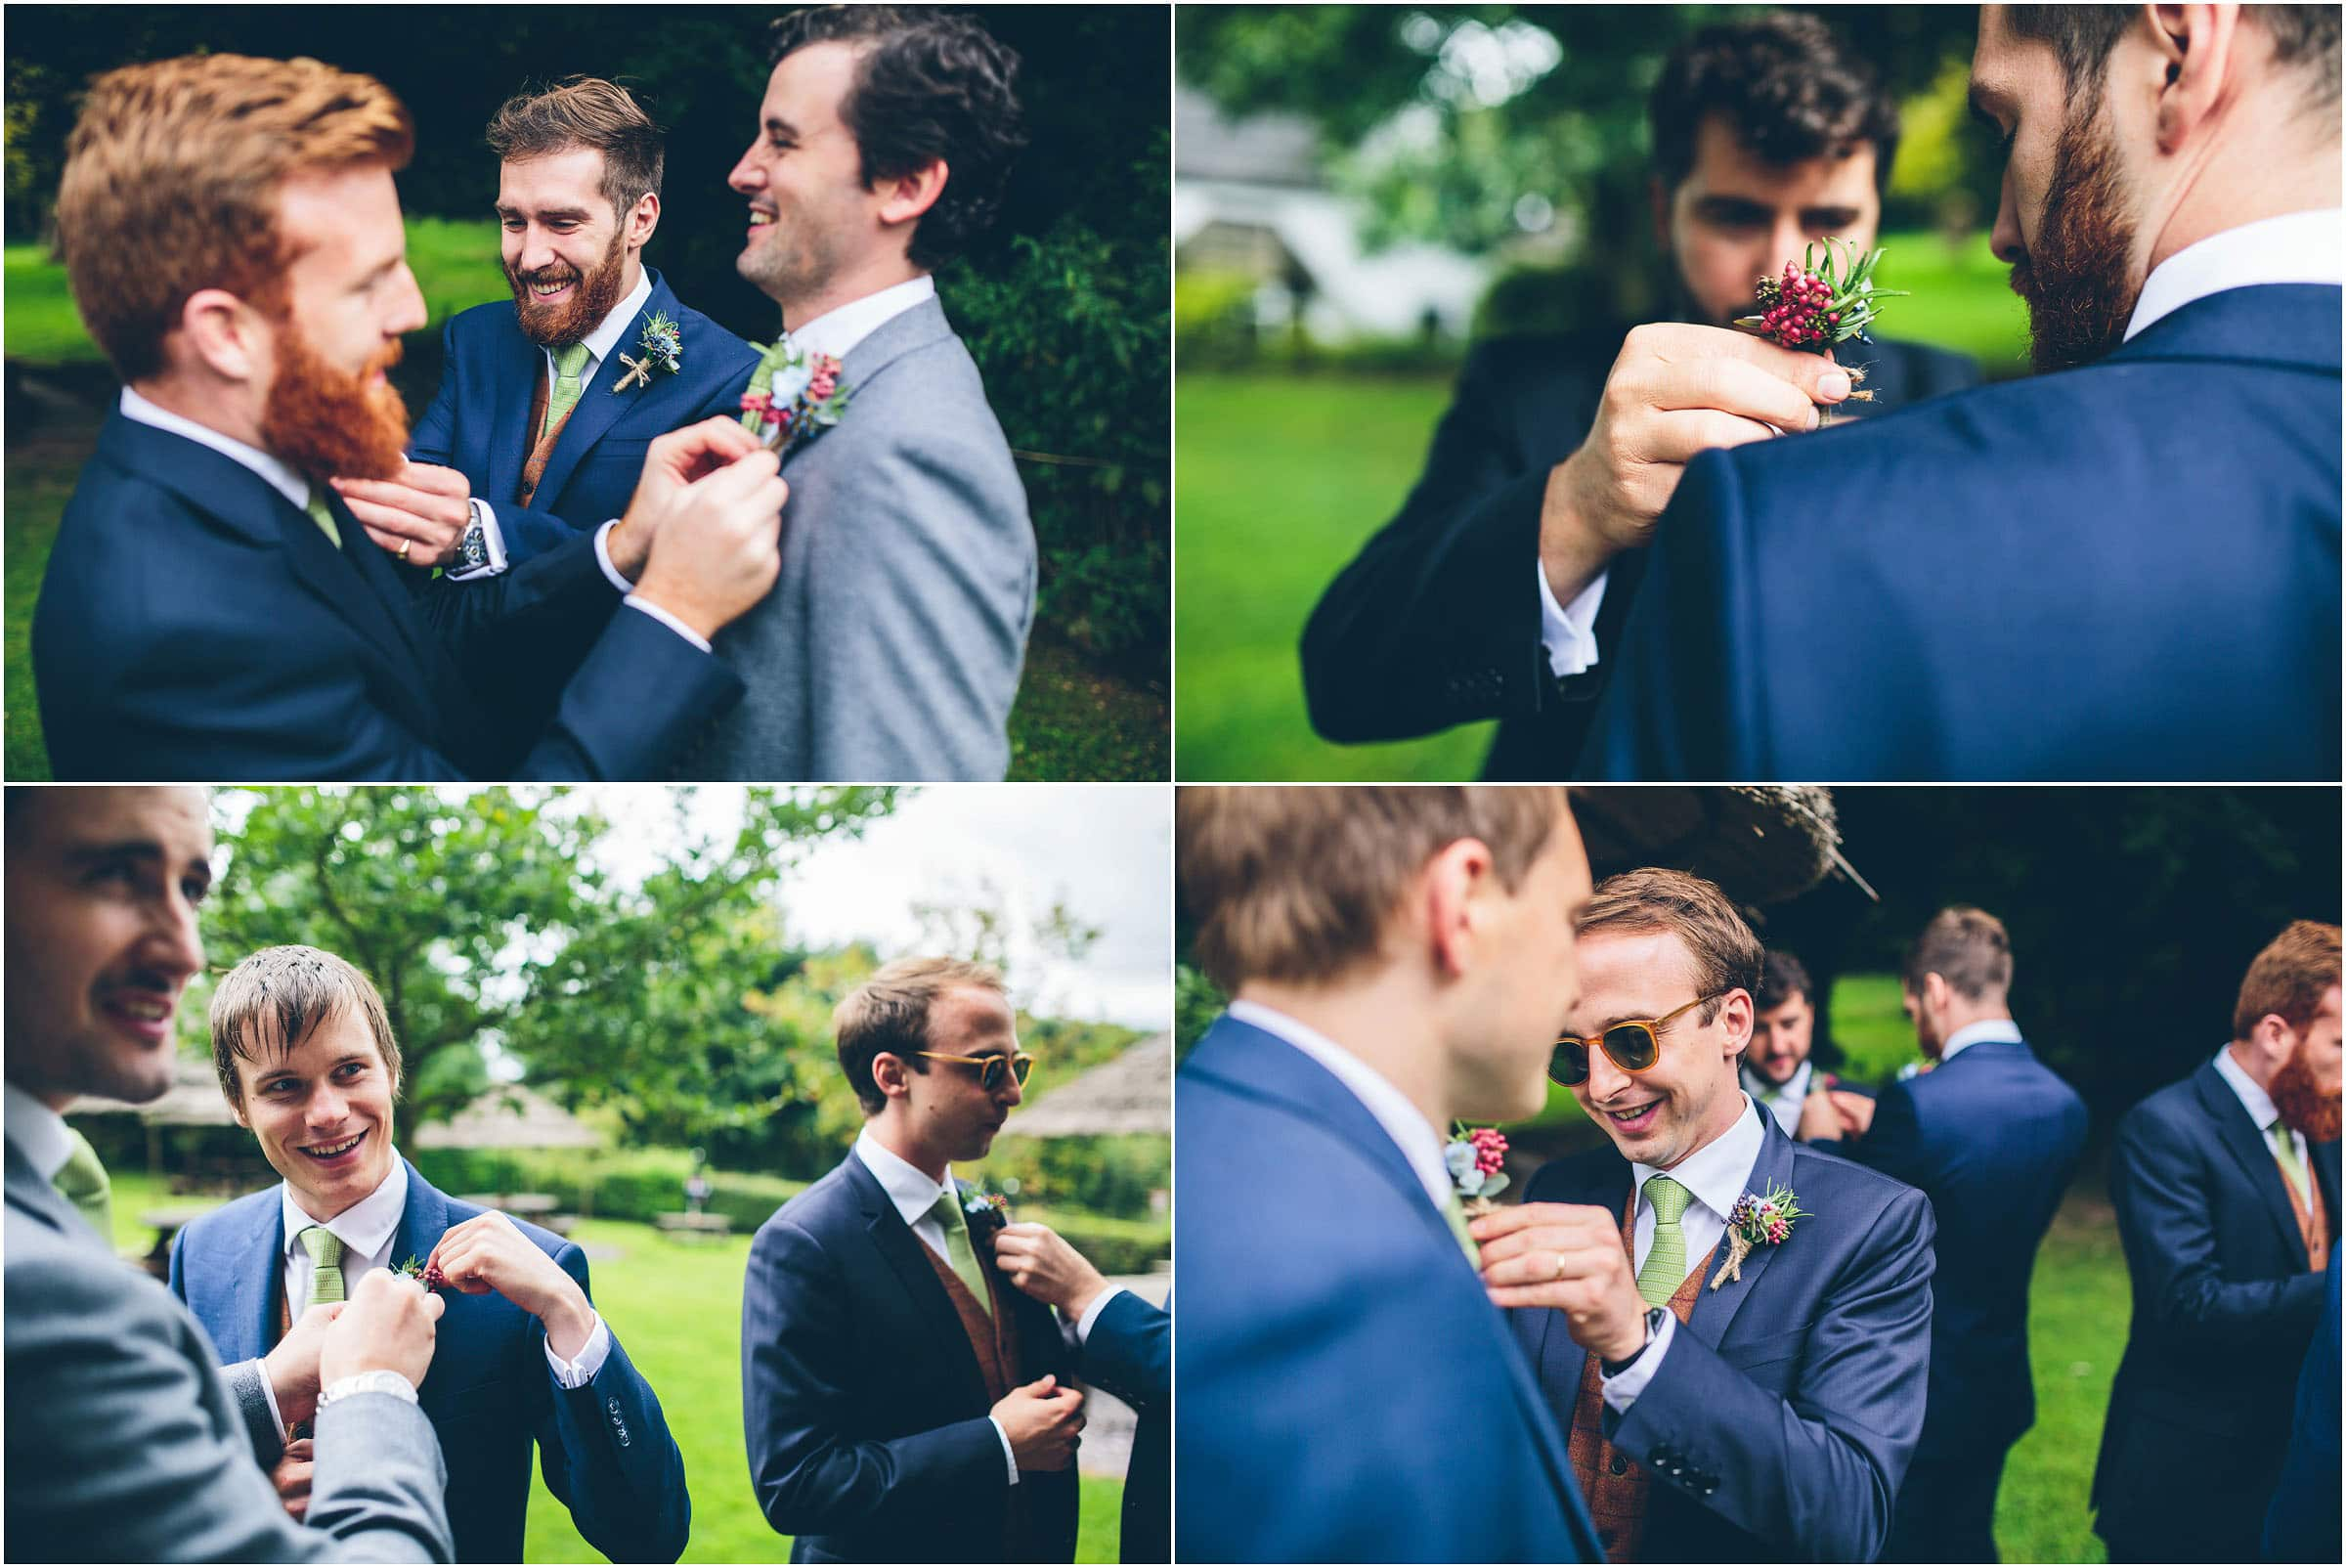 Harthill_Weddings_Wedding_Photography_0014